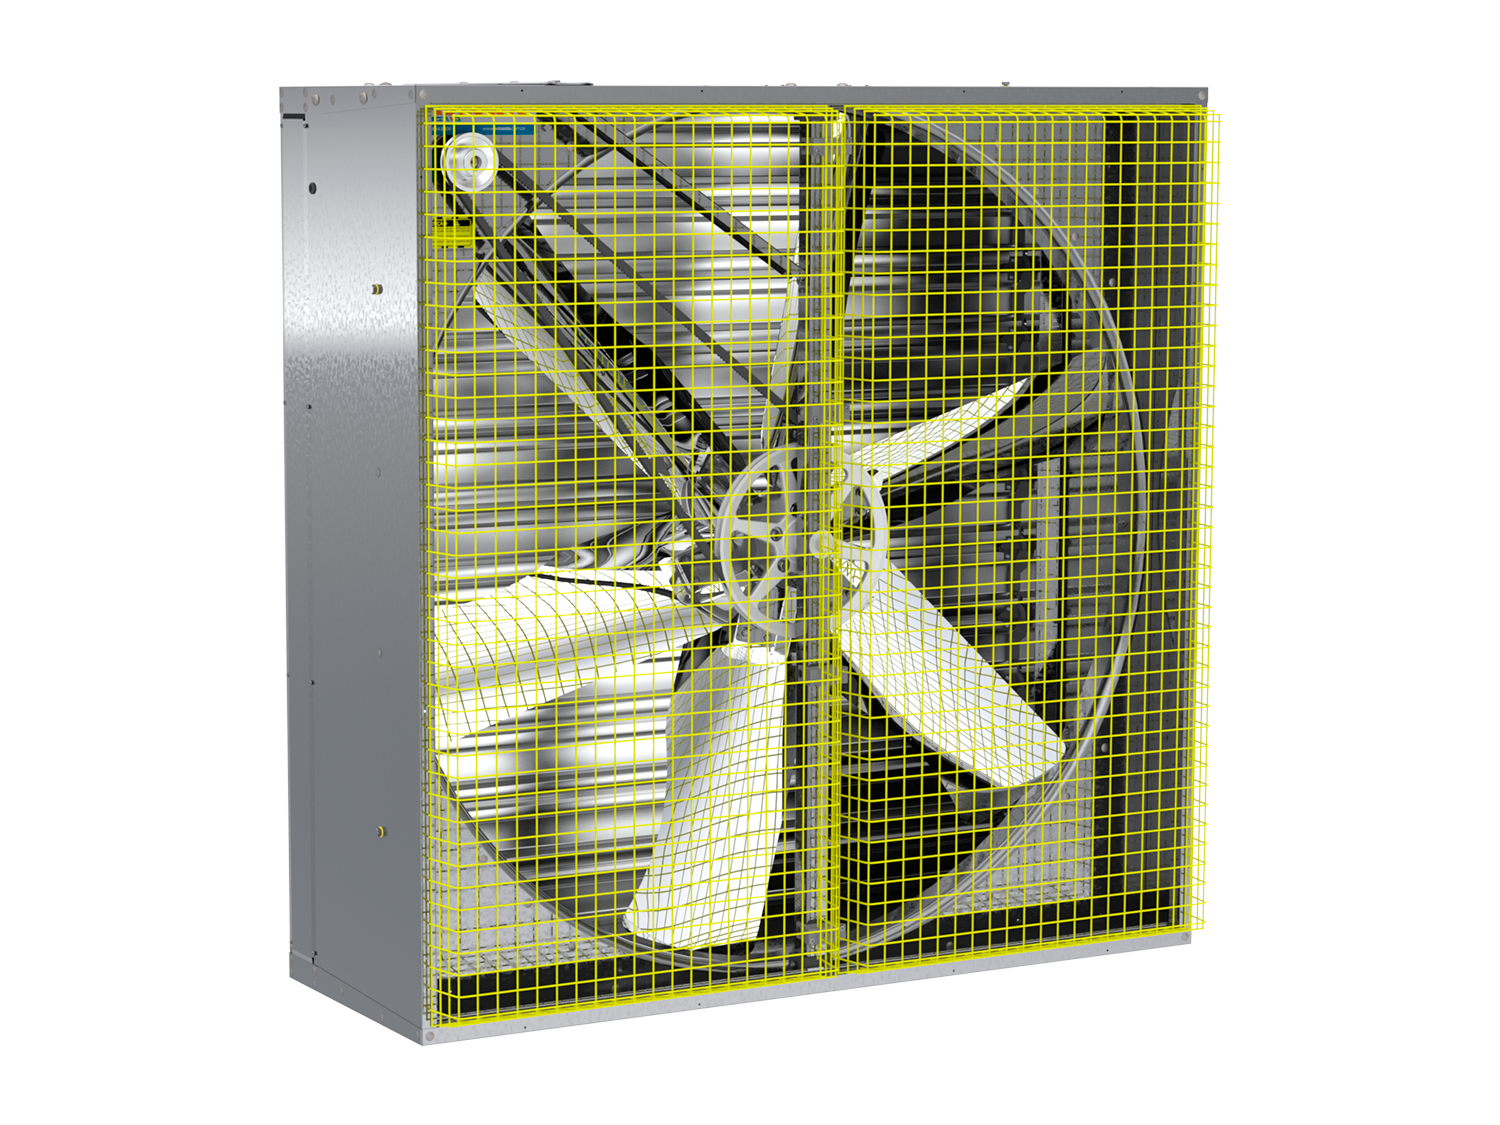 Exhaust Fan Eas 53 Corti Avioeste